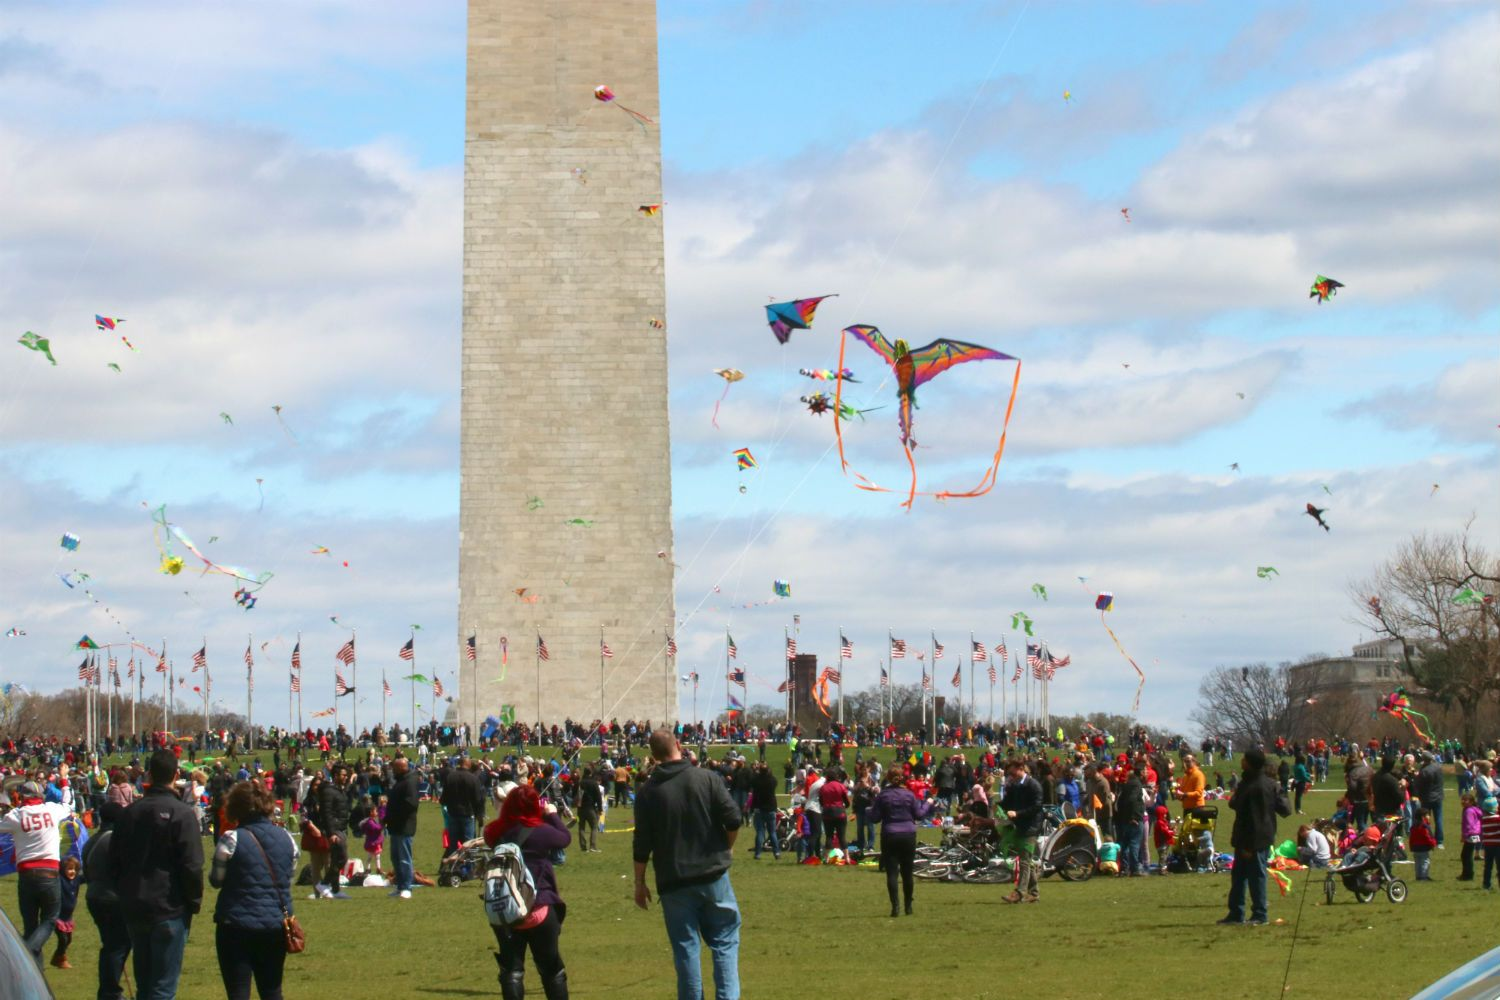 Join Us On Saturday March 31 2018 For The Blossom Kite Festival On The Grounds Of The Washington Monument Free Fami Kite Festival Travel Usa Free Family Fun